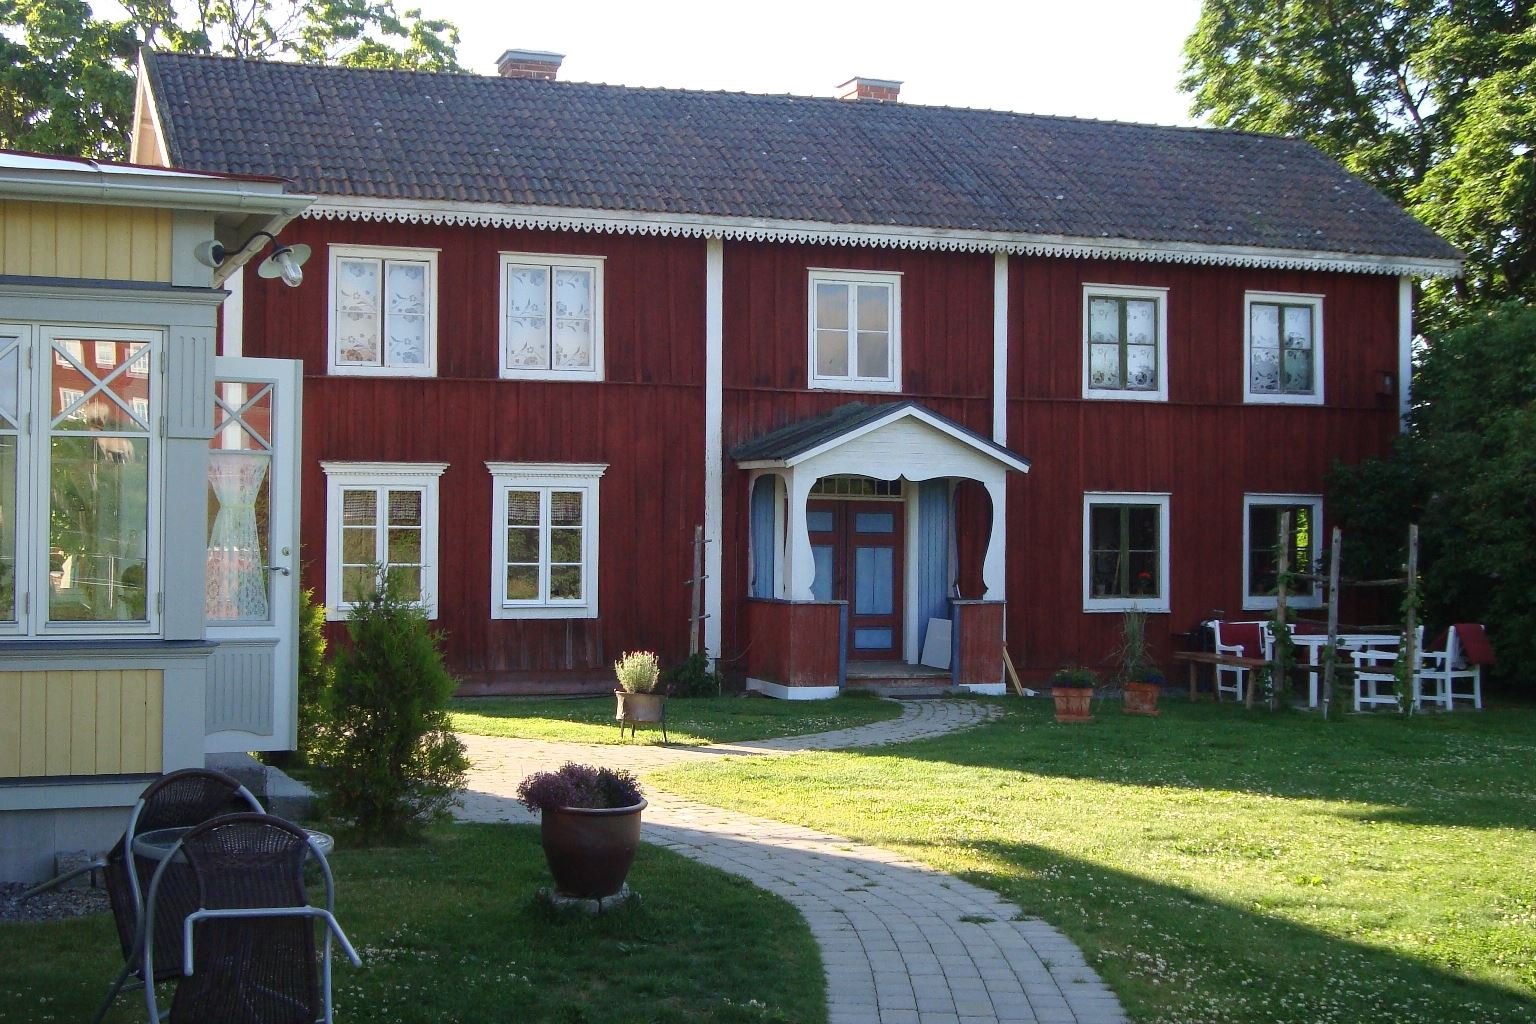 Hälsingegård Österbacks Bed & Breakfast